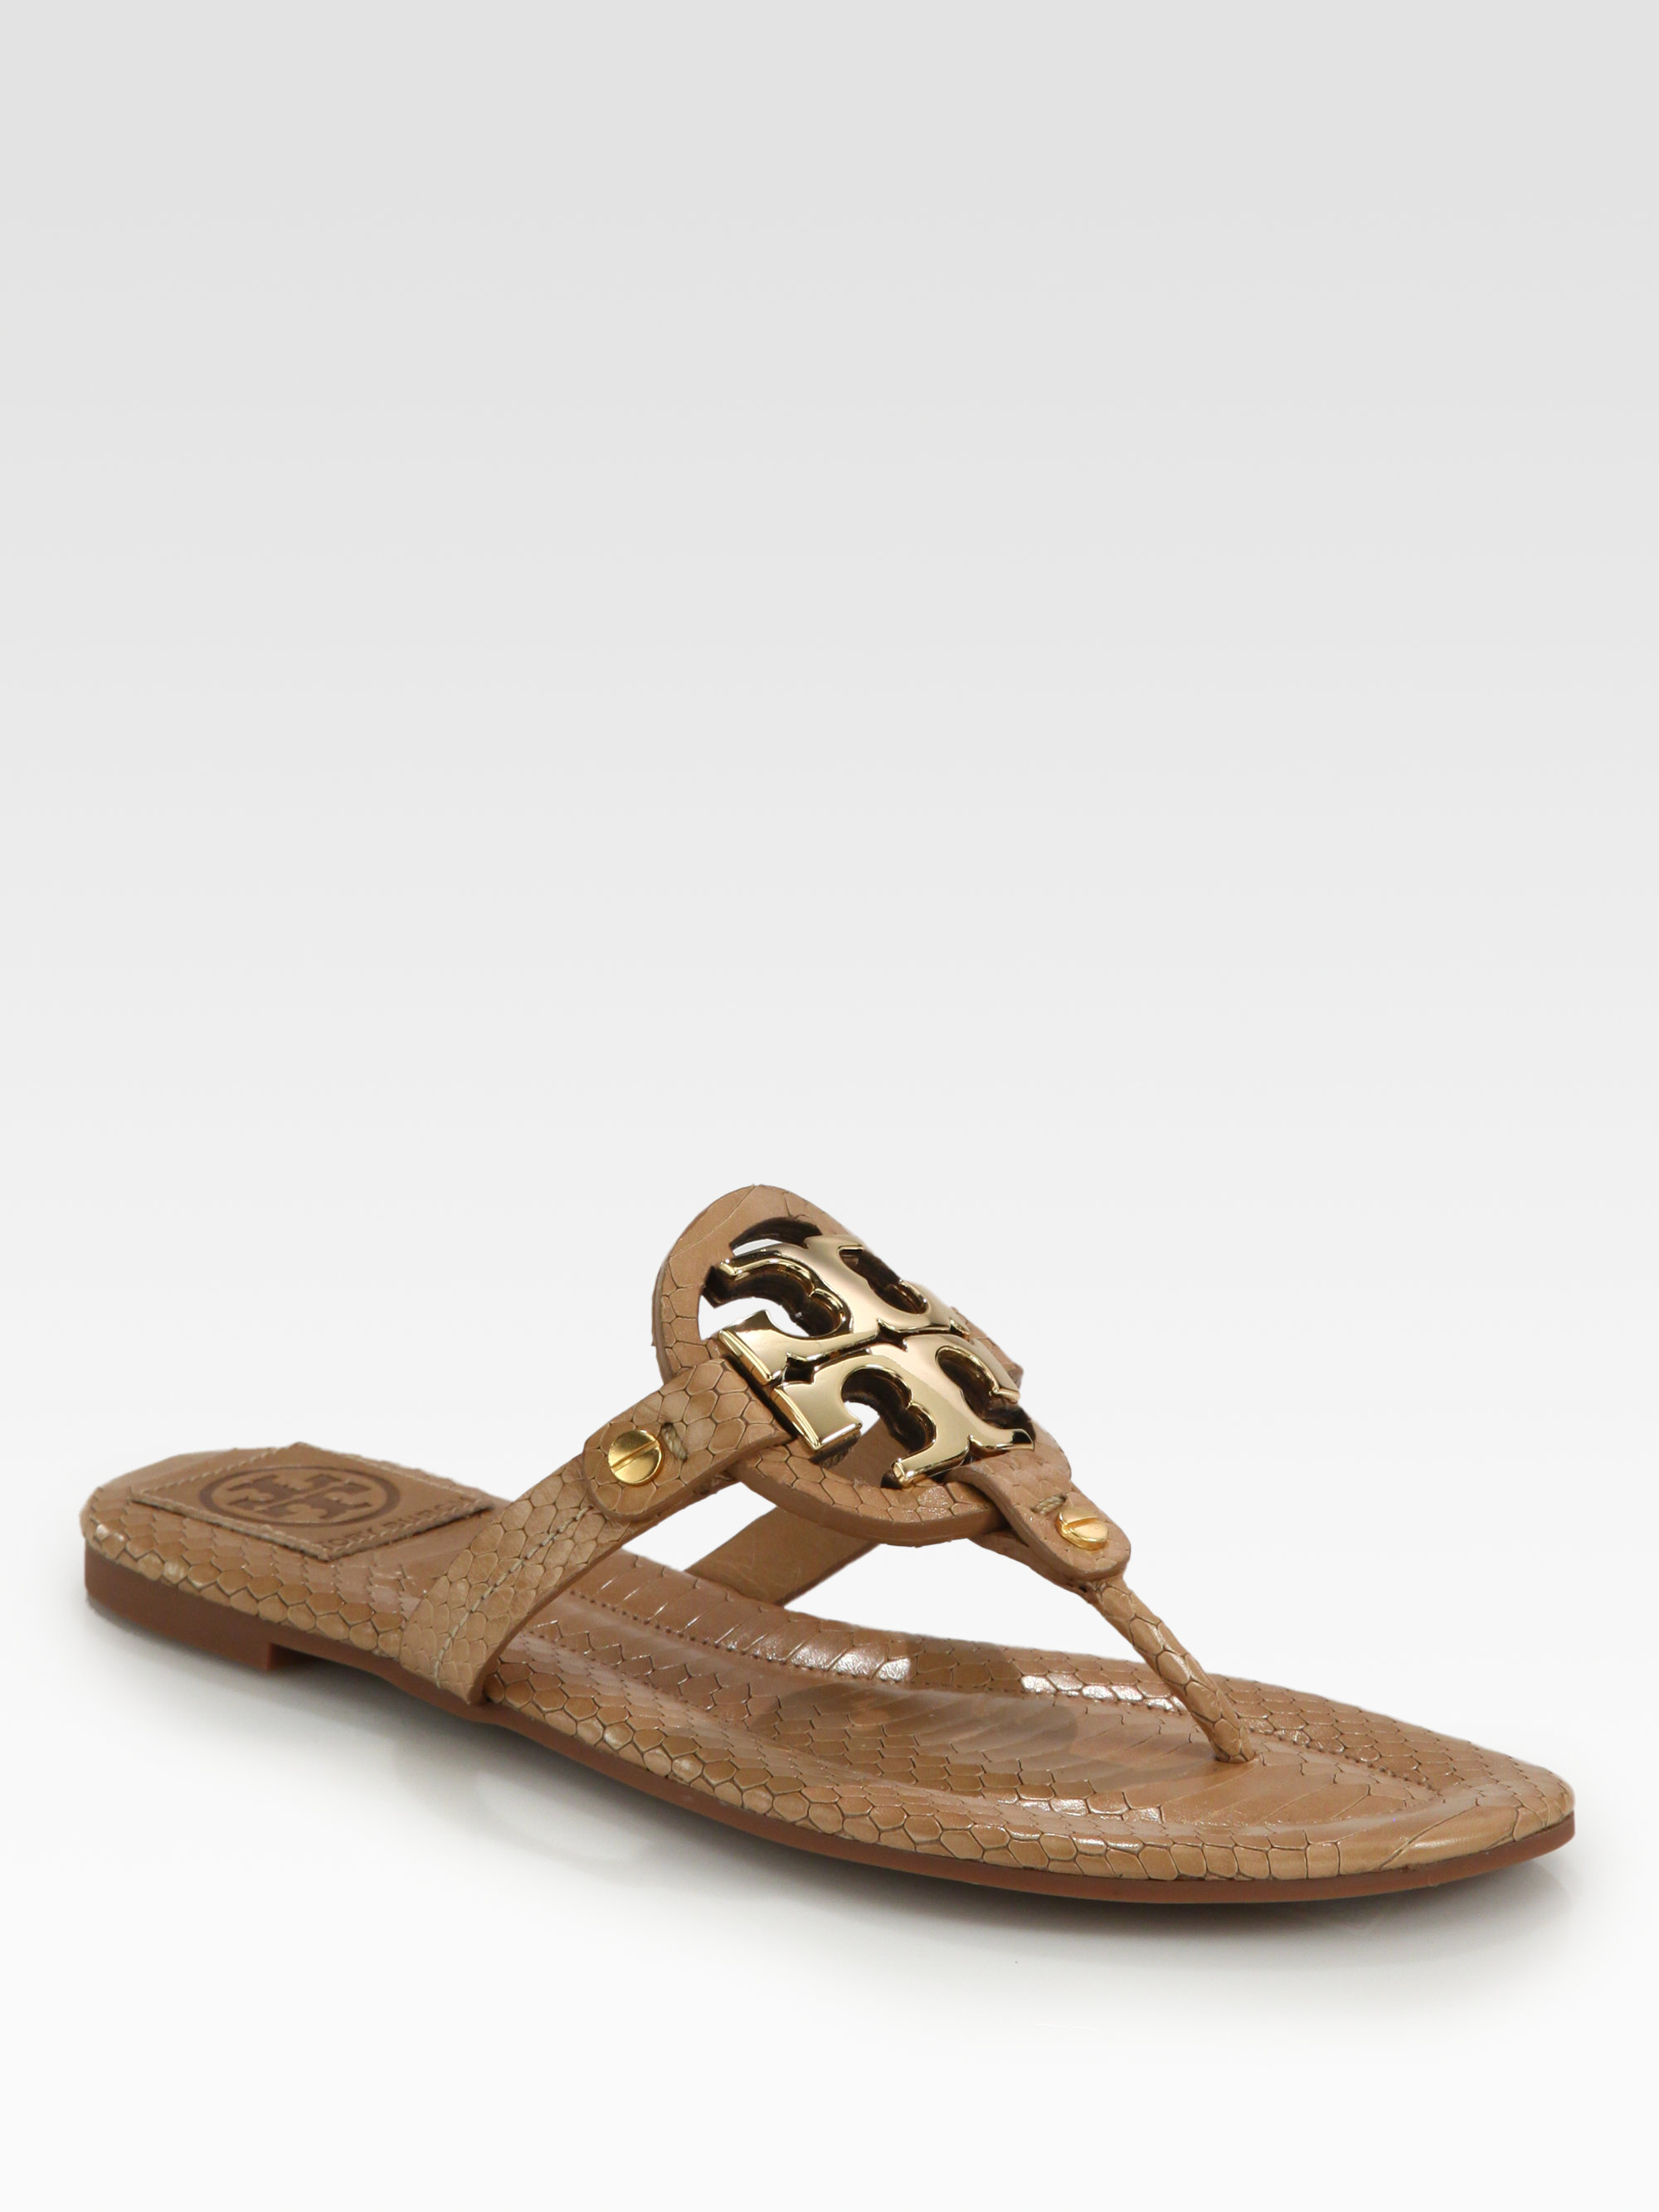 e6b0386612dbb6 Lyst - Tory Burch Miller Snakeprint Leather Thong Sandals in Brown